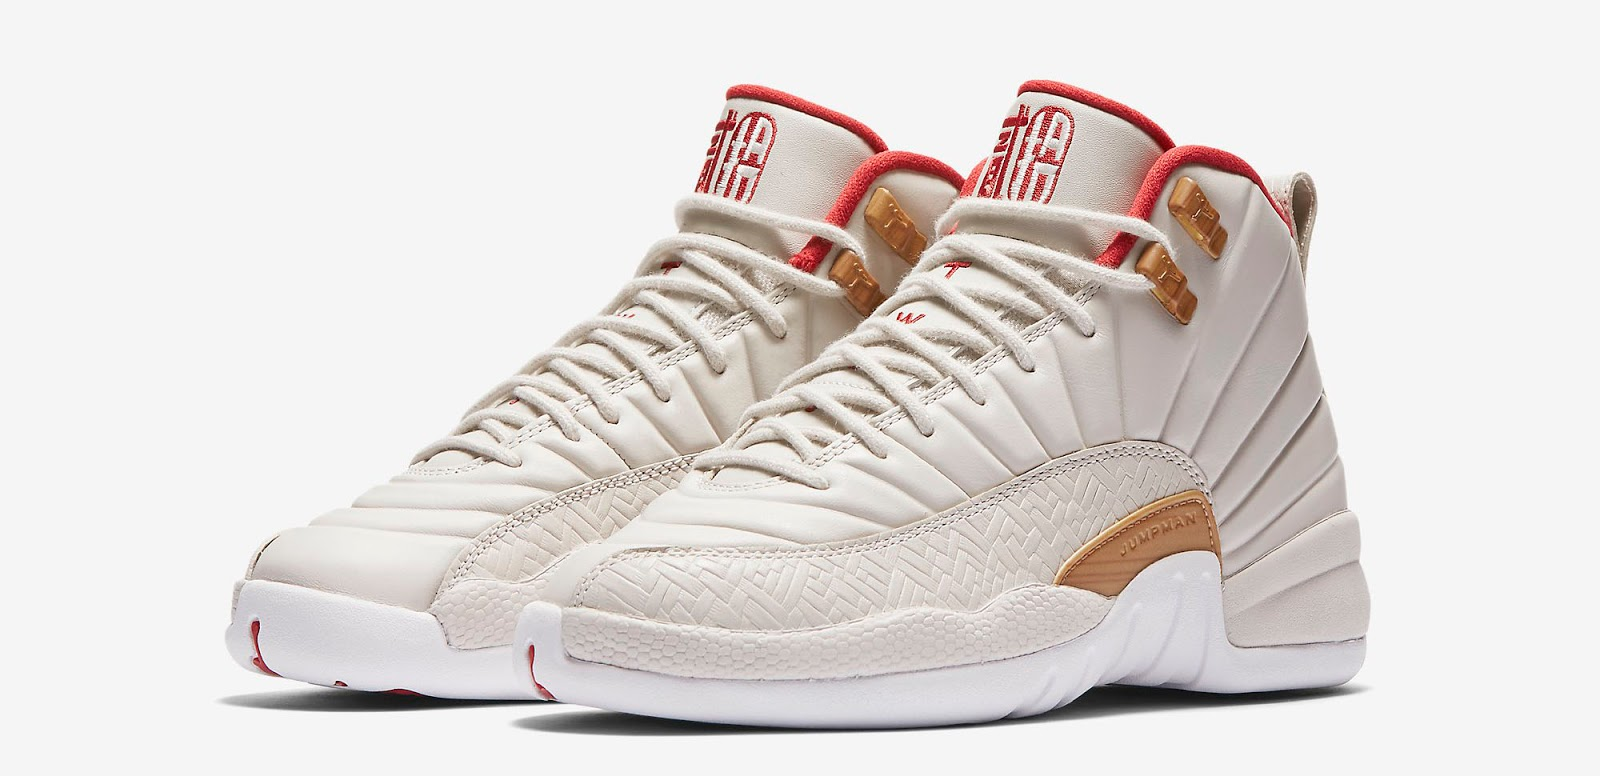 official photos 4fc51 d8906 Ladies, the latest colorway of the Girls Air Jordan 12 Retro drops this  weekend.